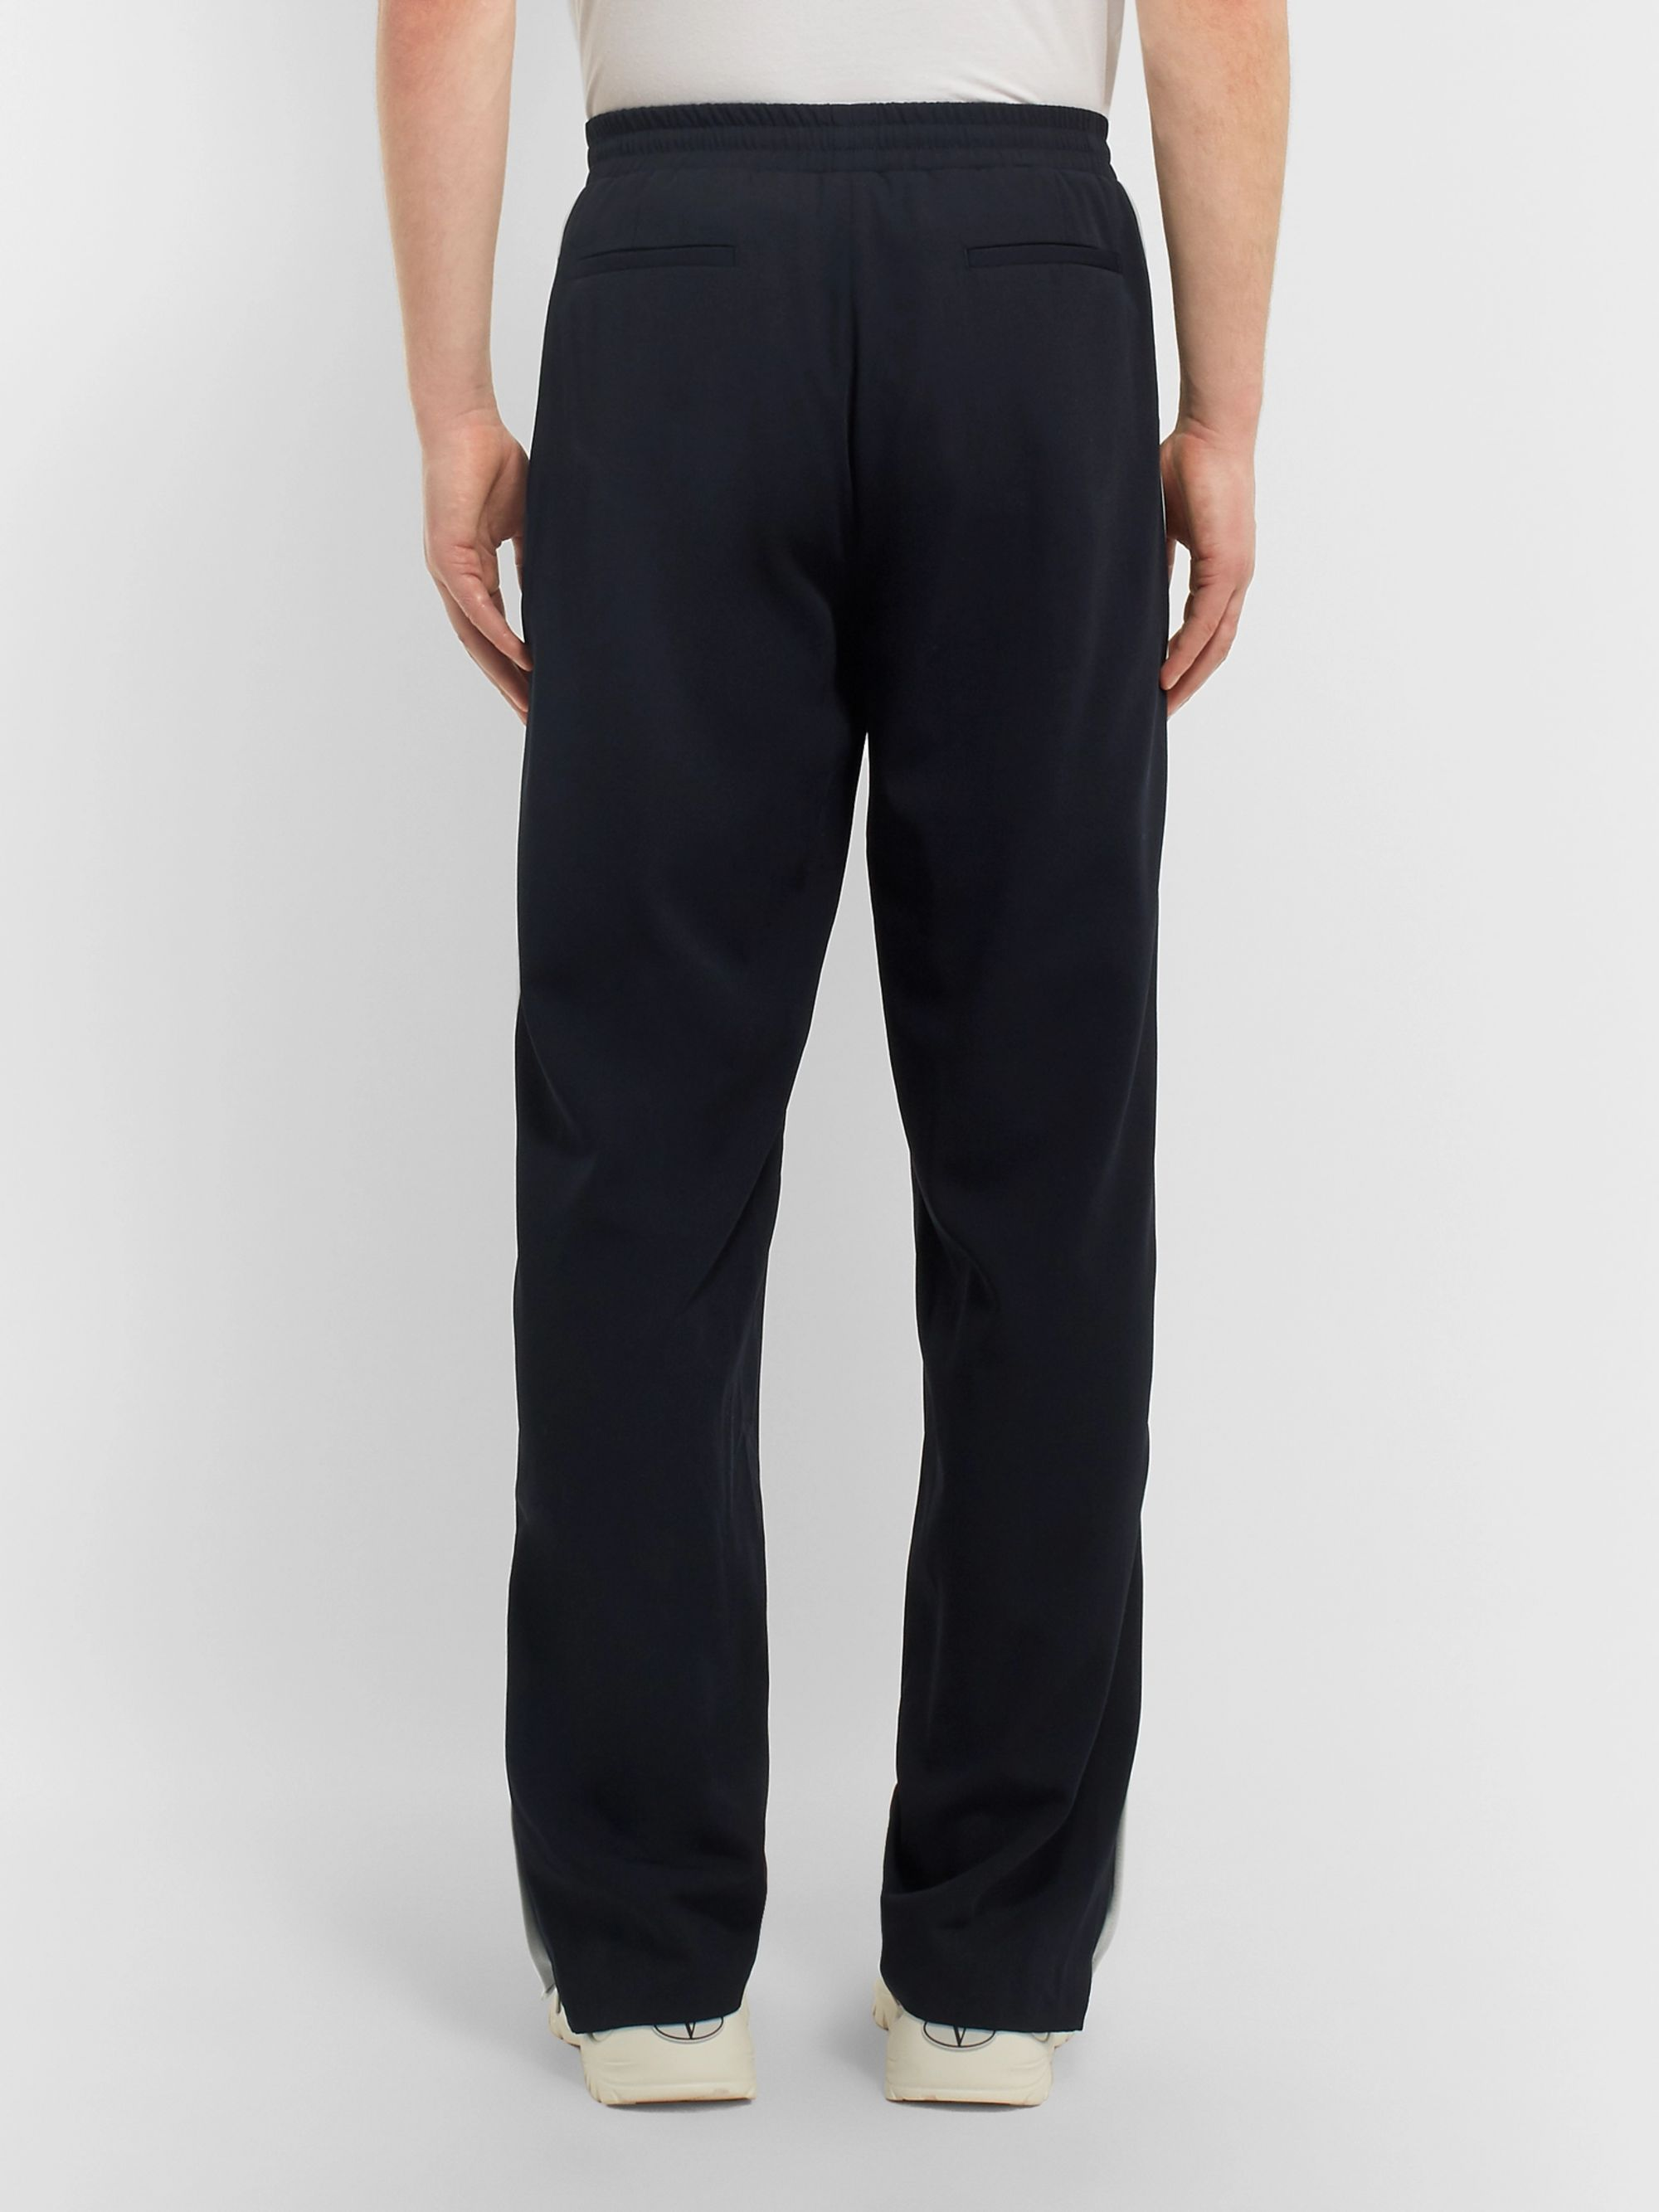 Valentino Striped Virgin Wool Track Pants